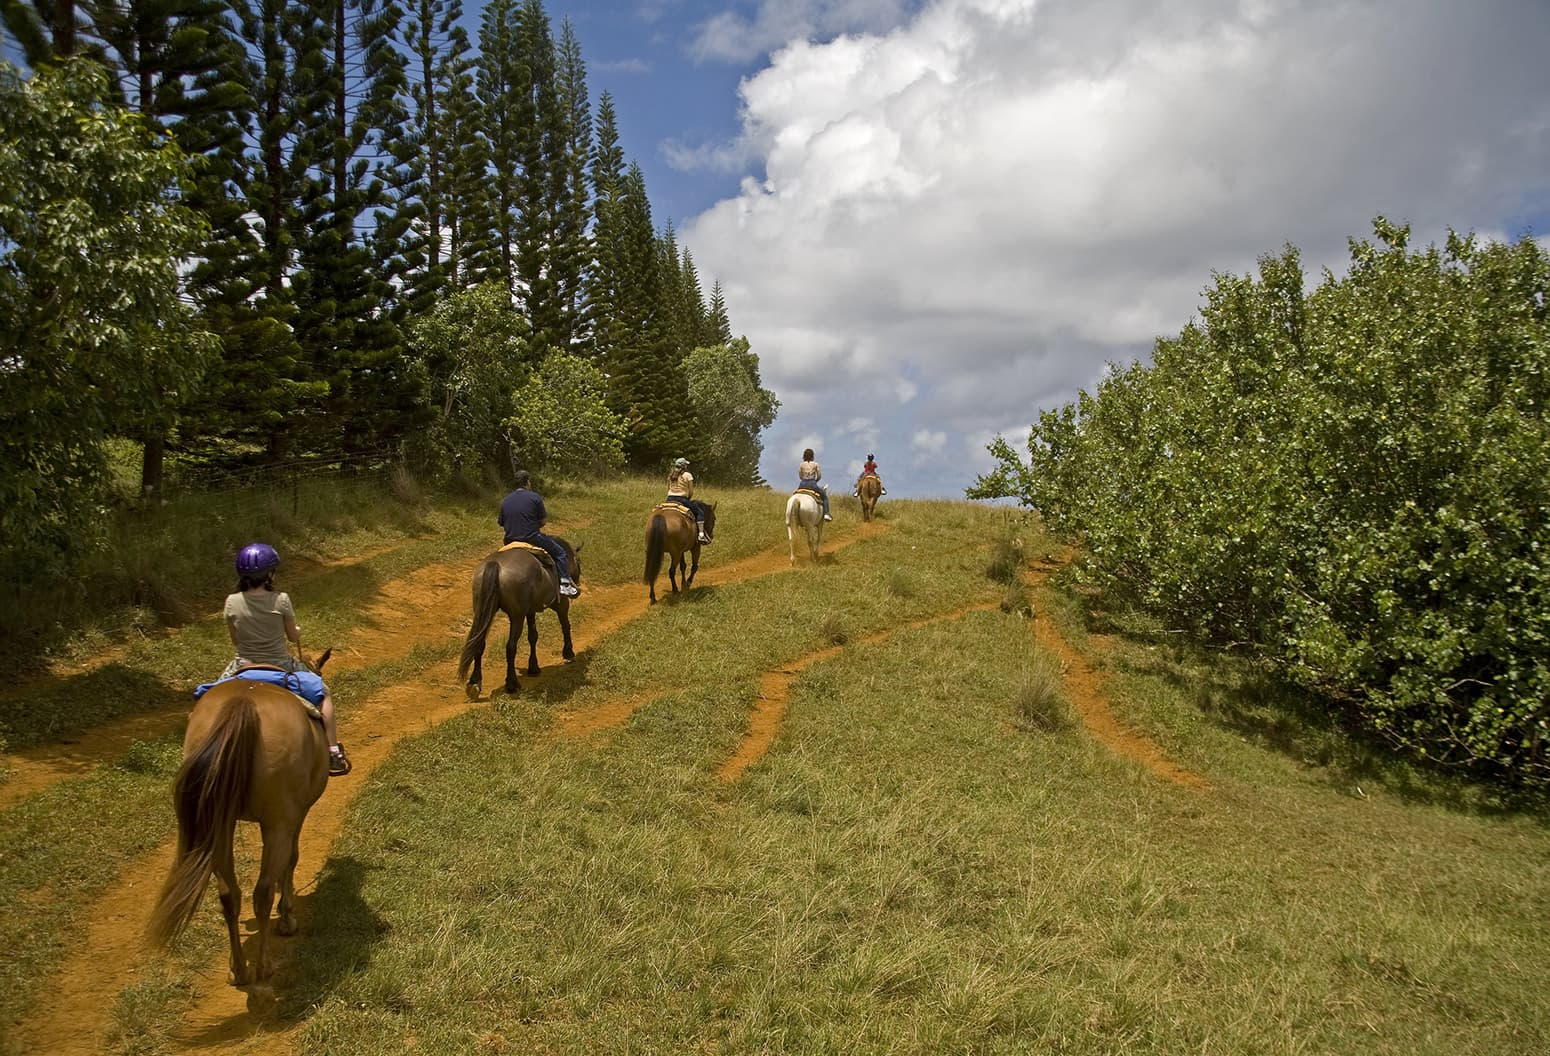 Group of people riding horses on a trail